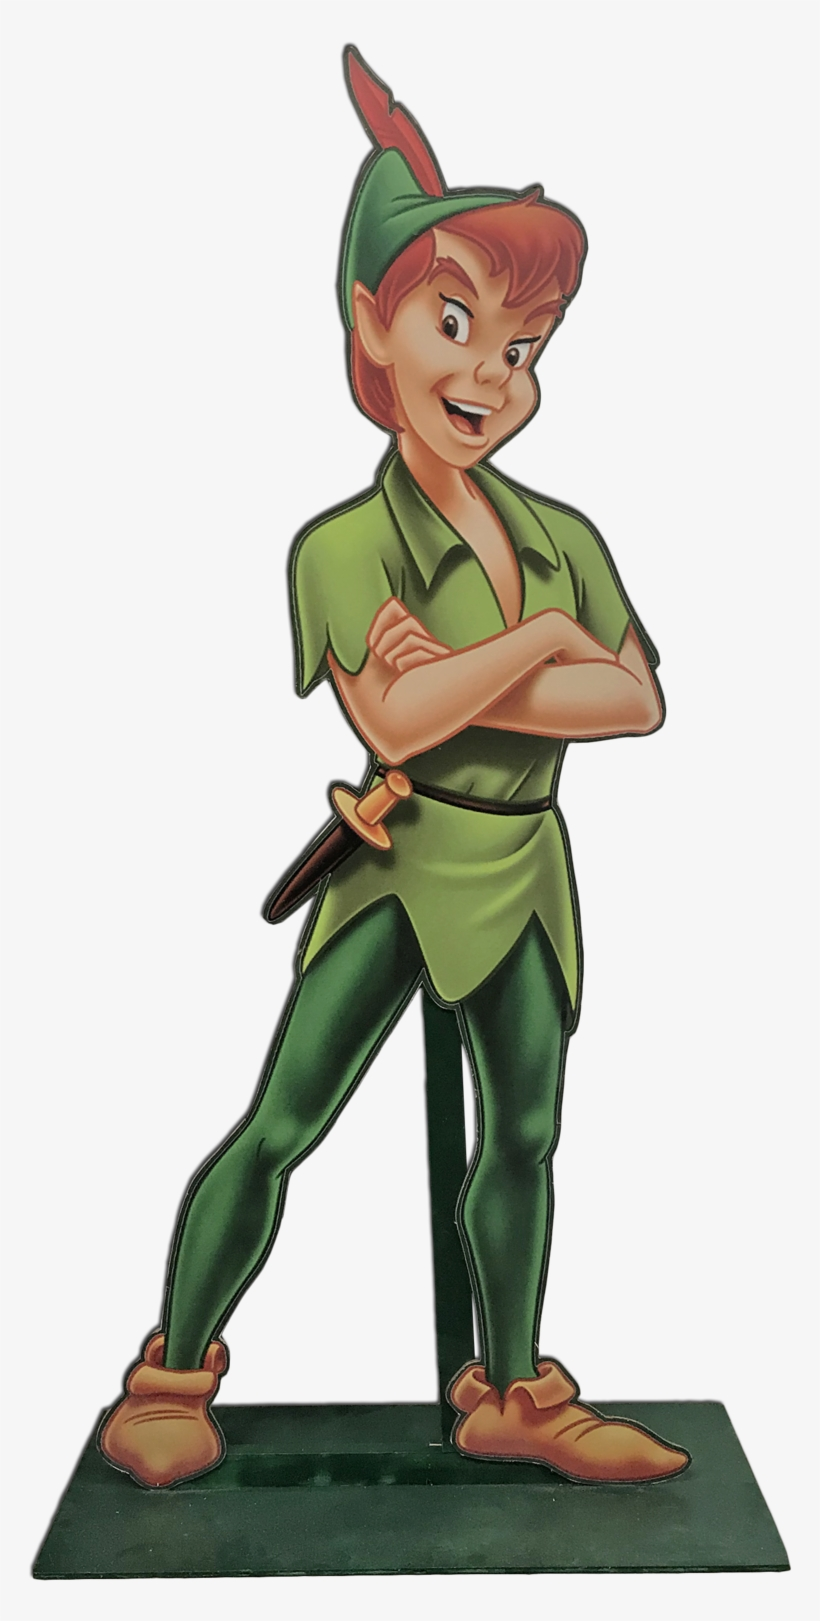 Peter Pan Standee - Disney Peter Pan Cardboard Stand-up, transparent png #736397